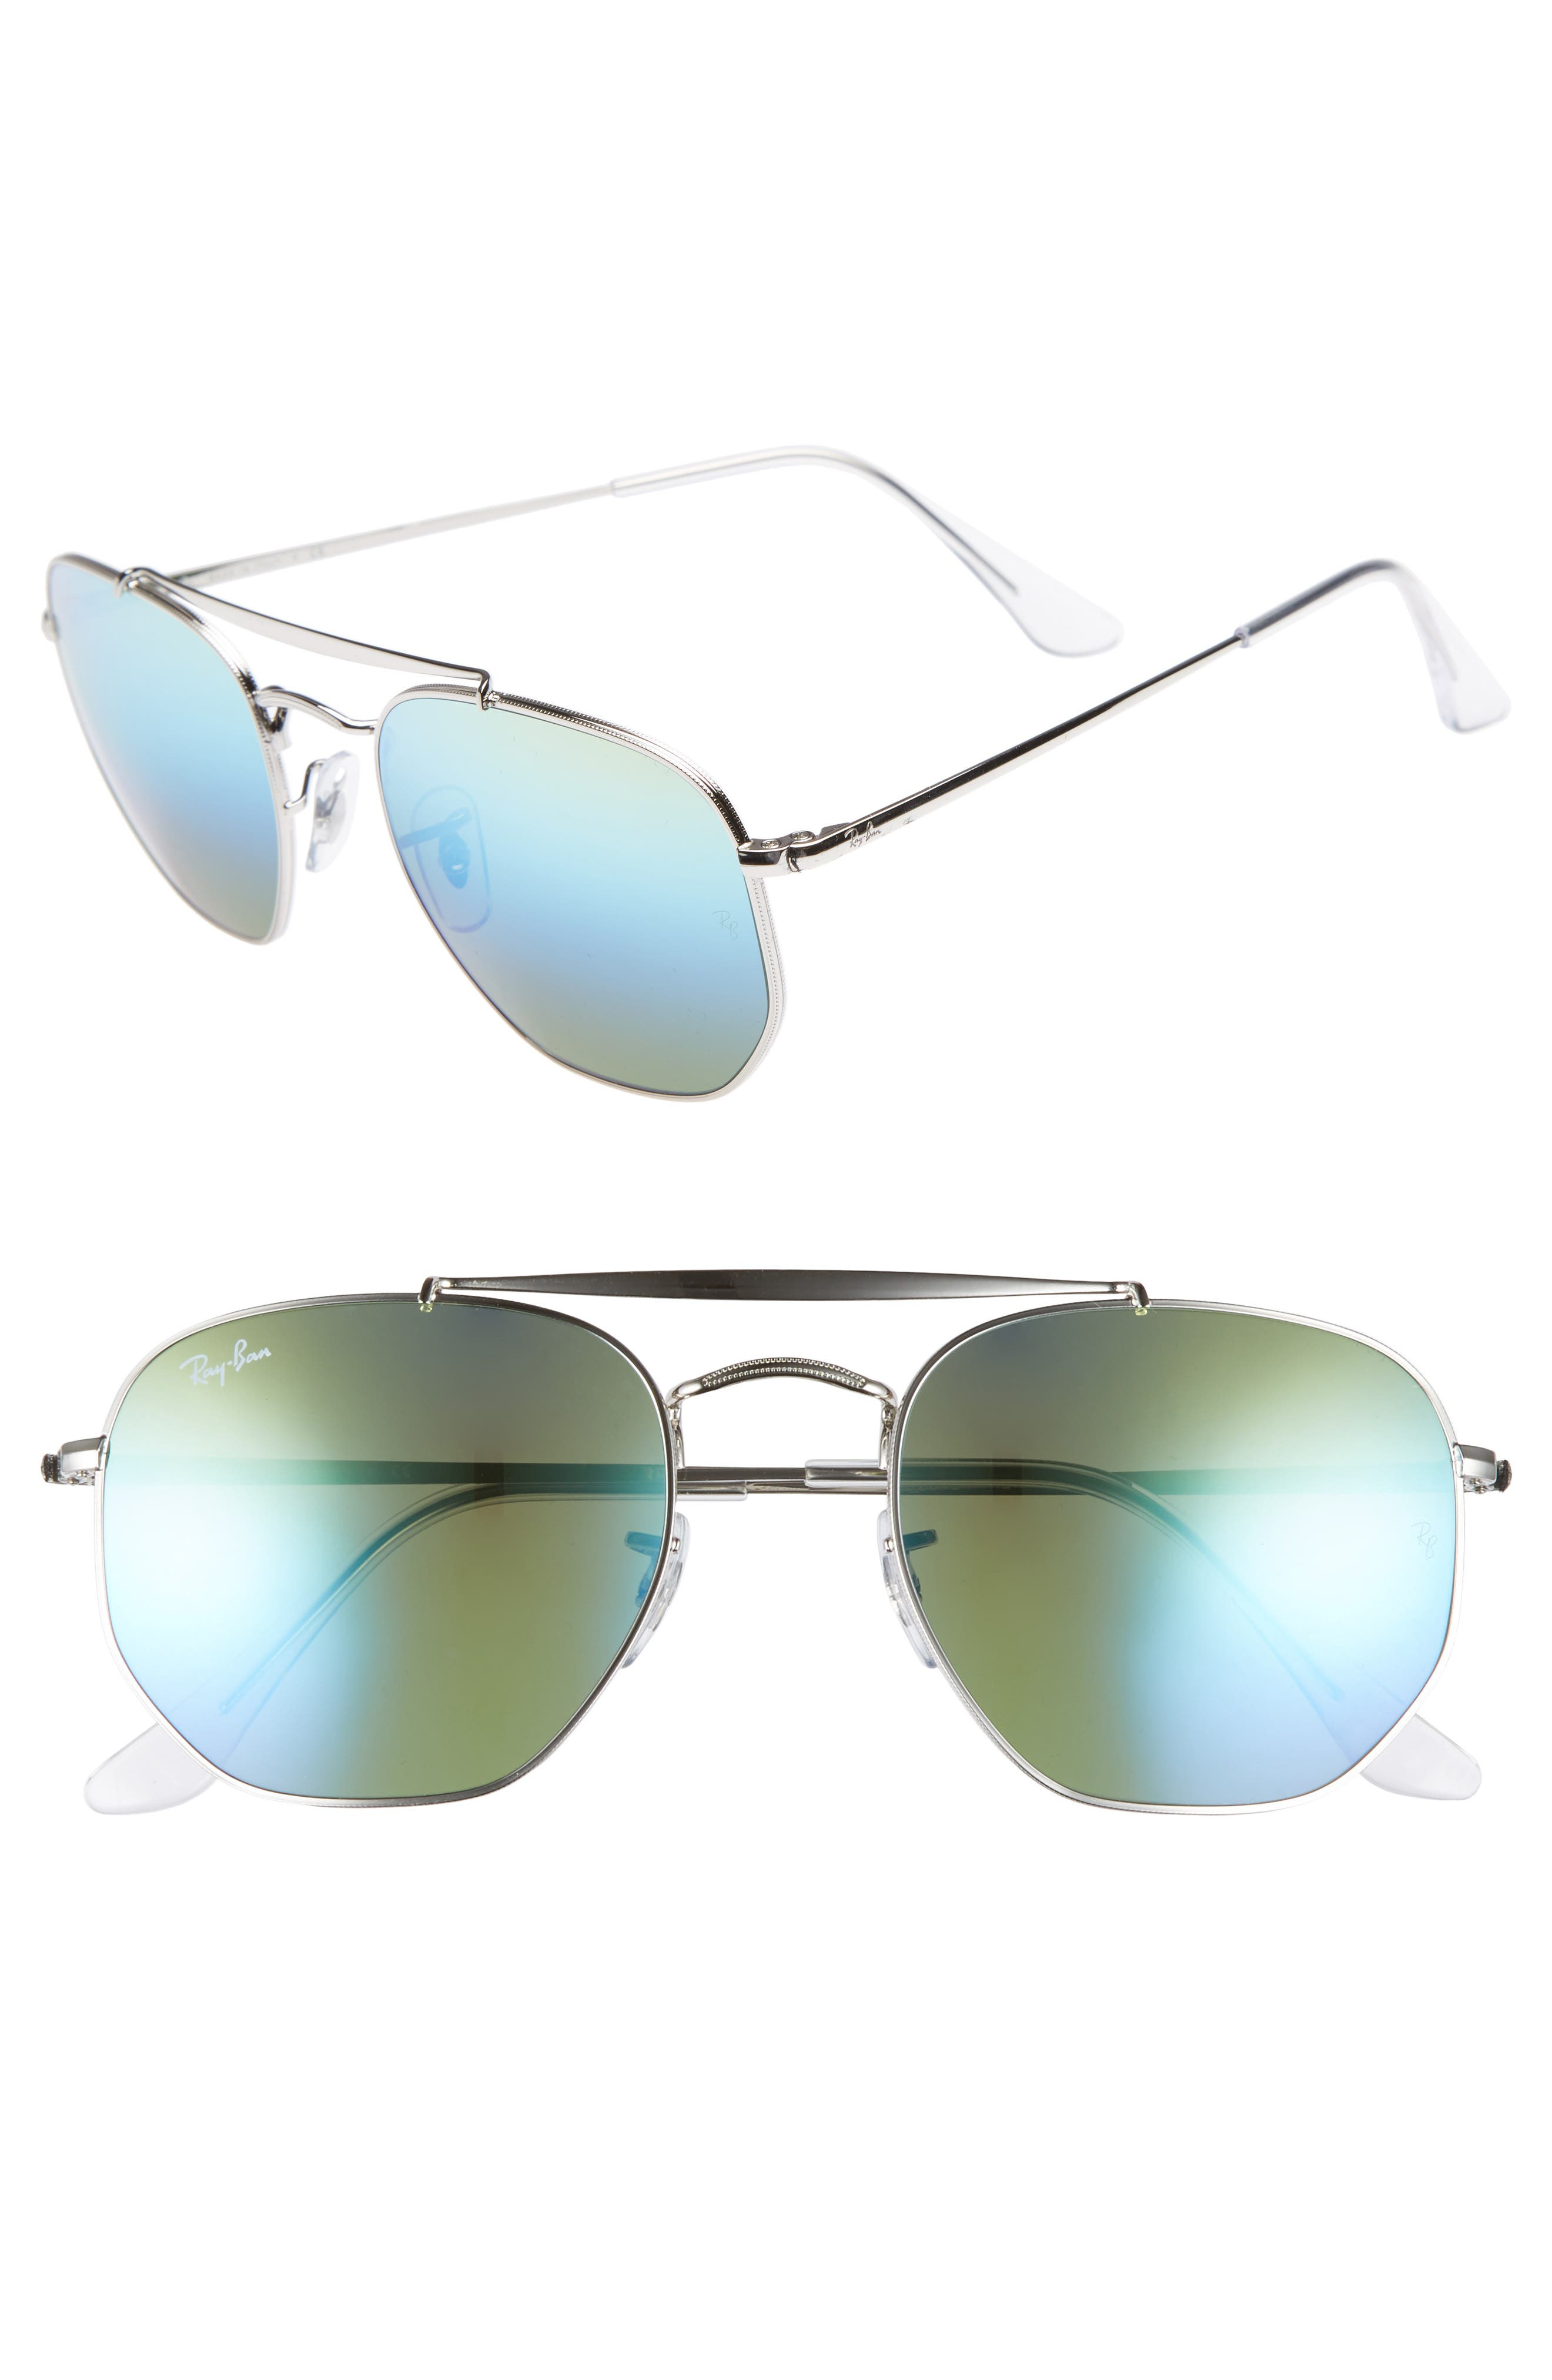 Marshal 54mm Aviator Sunglasses,                         Main,                         color, Blue/ Green